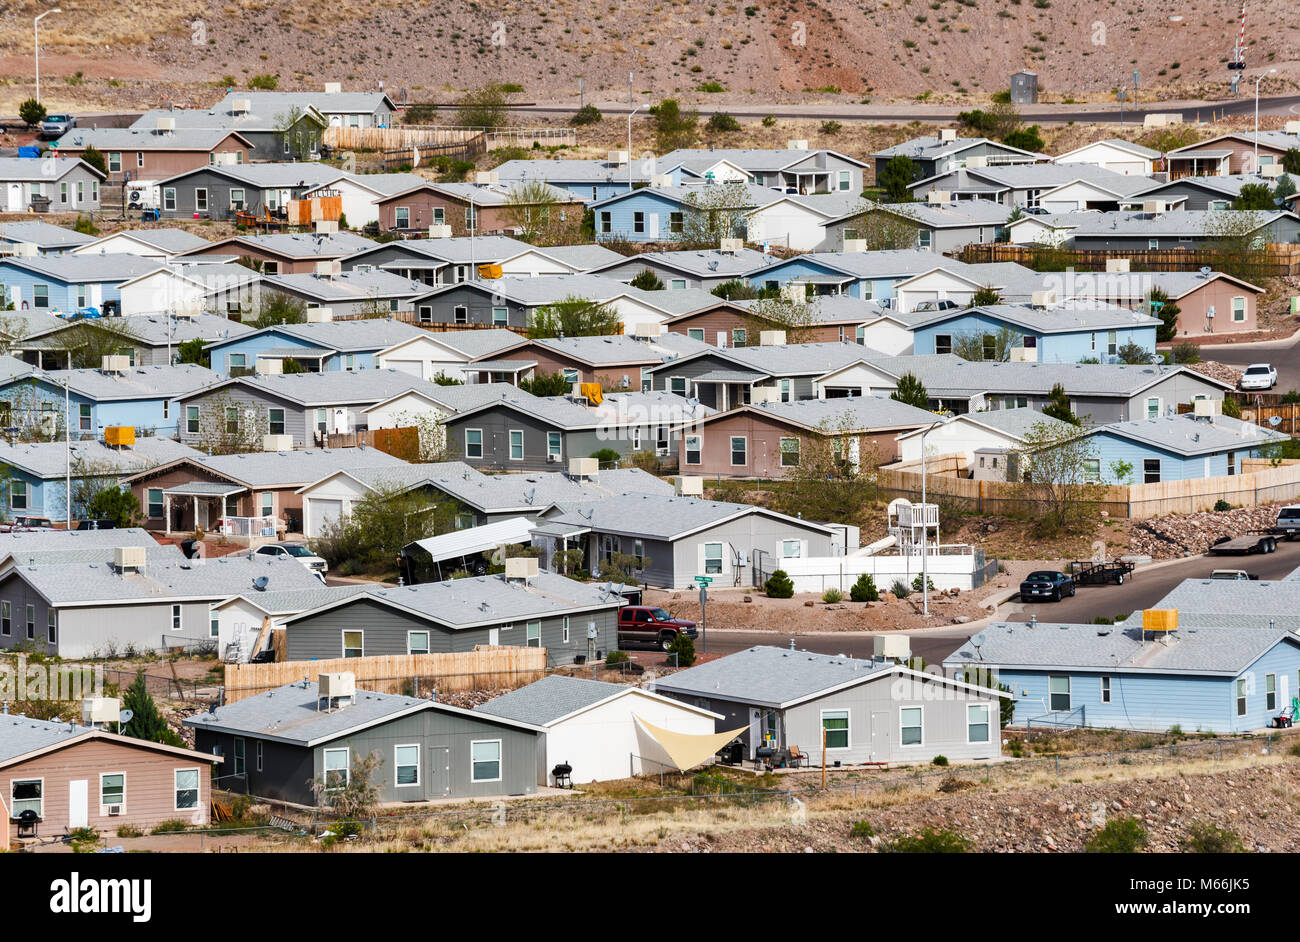 Single family houses in residential area in company town of Morenci, Arizona, USA - Stock Image